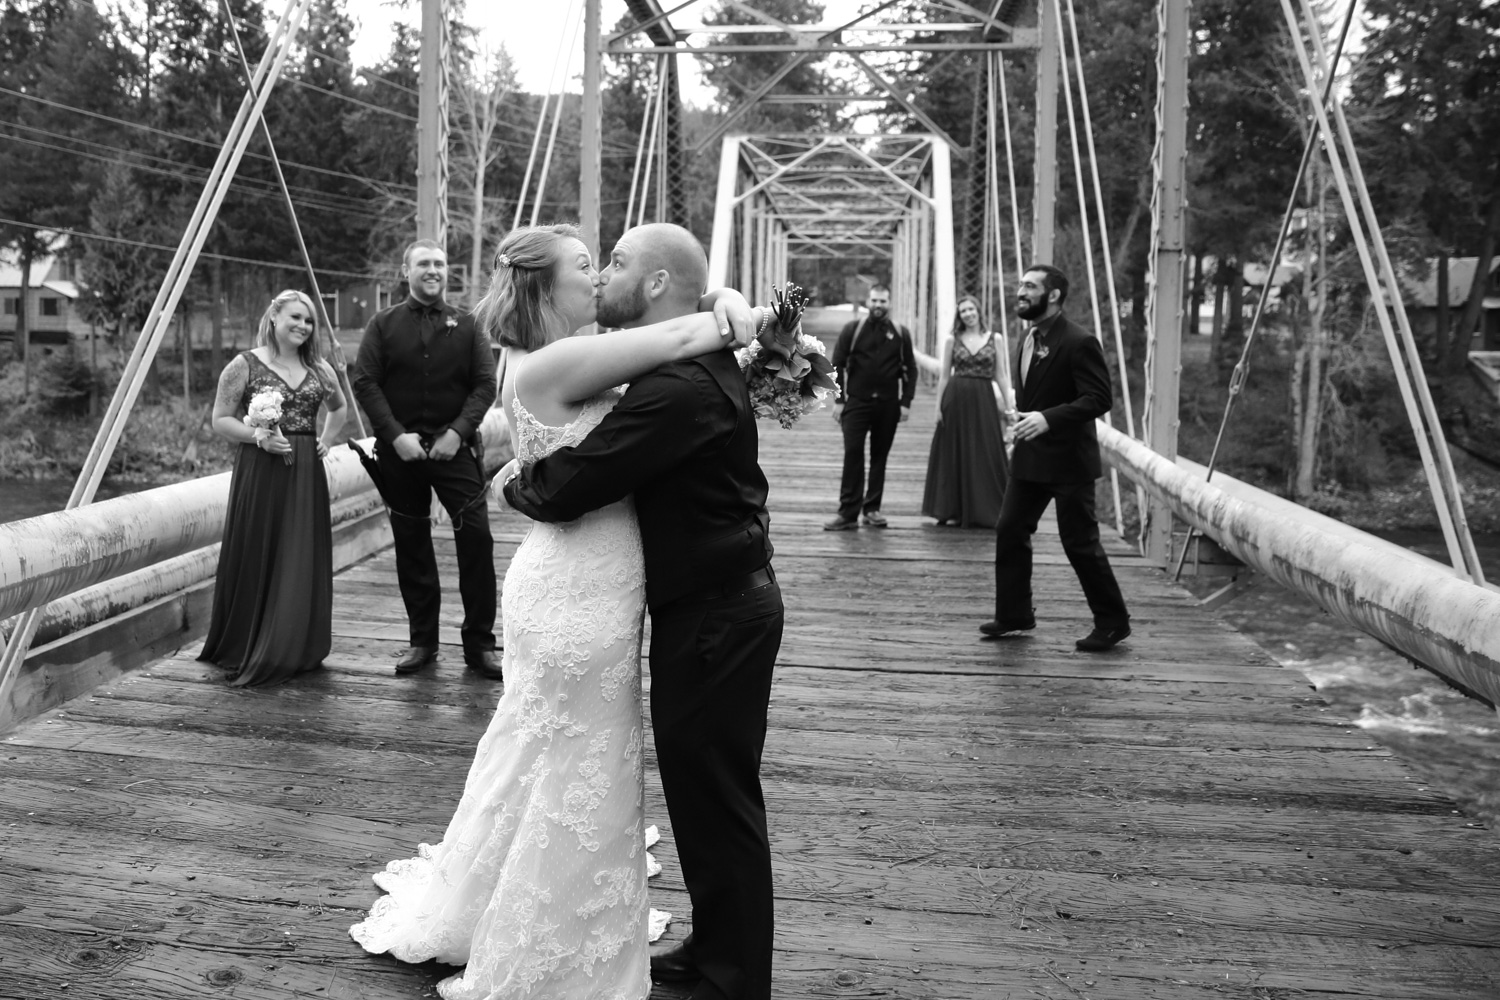 Wedding Photos Mountain Springs Lodge Leavenworth Washington11.jpg